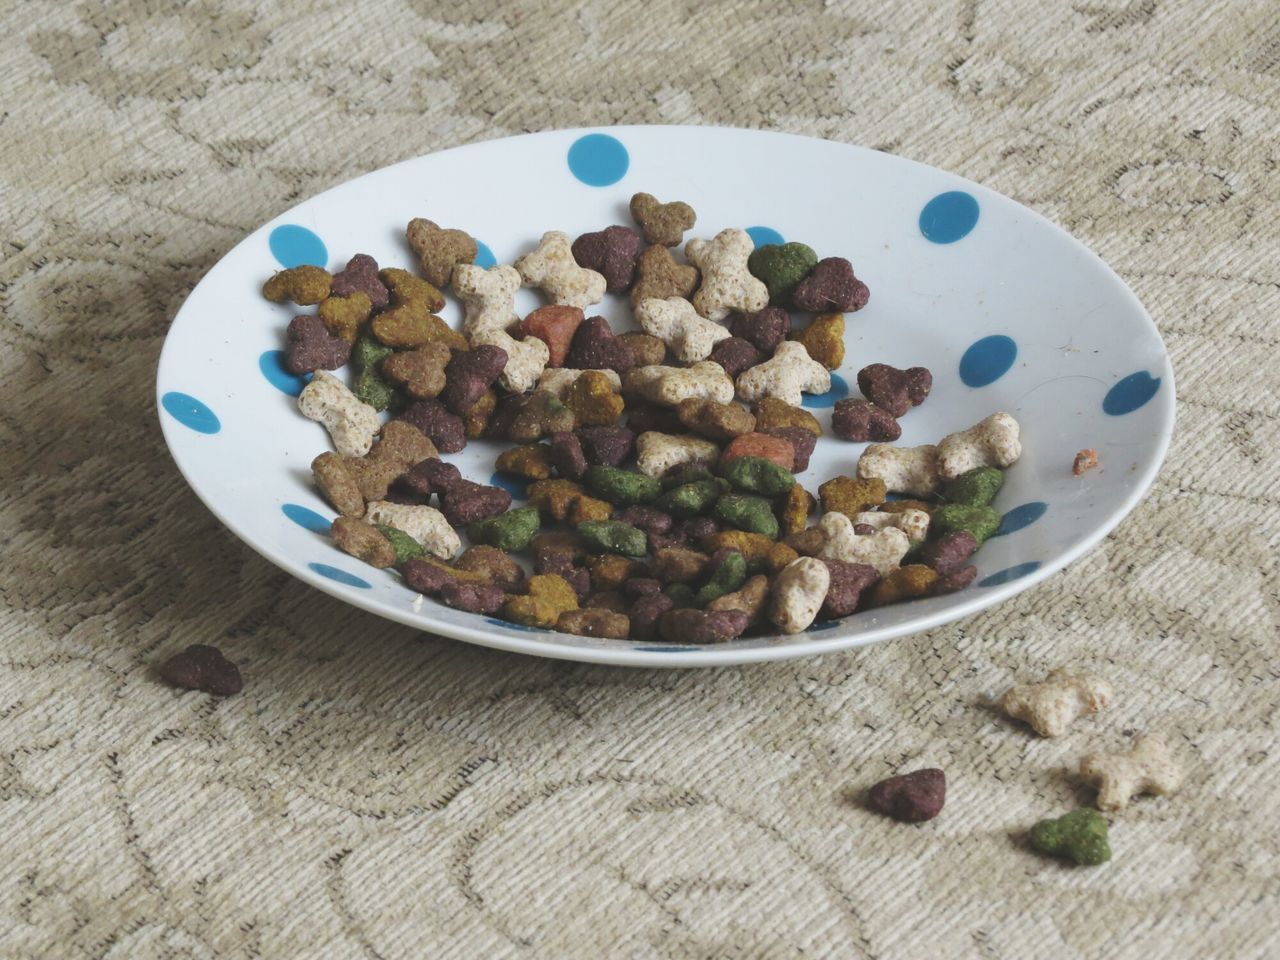 Dog Food Kibble Bright Colours Bright Colors Contrast Shadow Dog Food And Drink High Angle View Indoors  Freshness Food Healthy Eating Large Group Of Objects Day Multi Colored No People Vegetarian Food